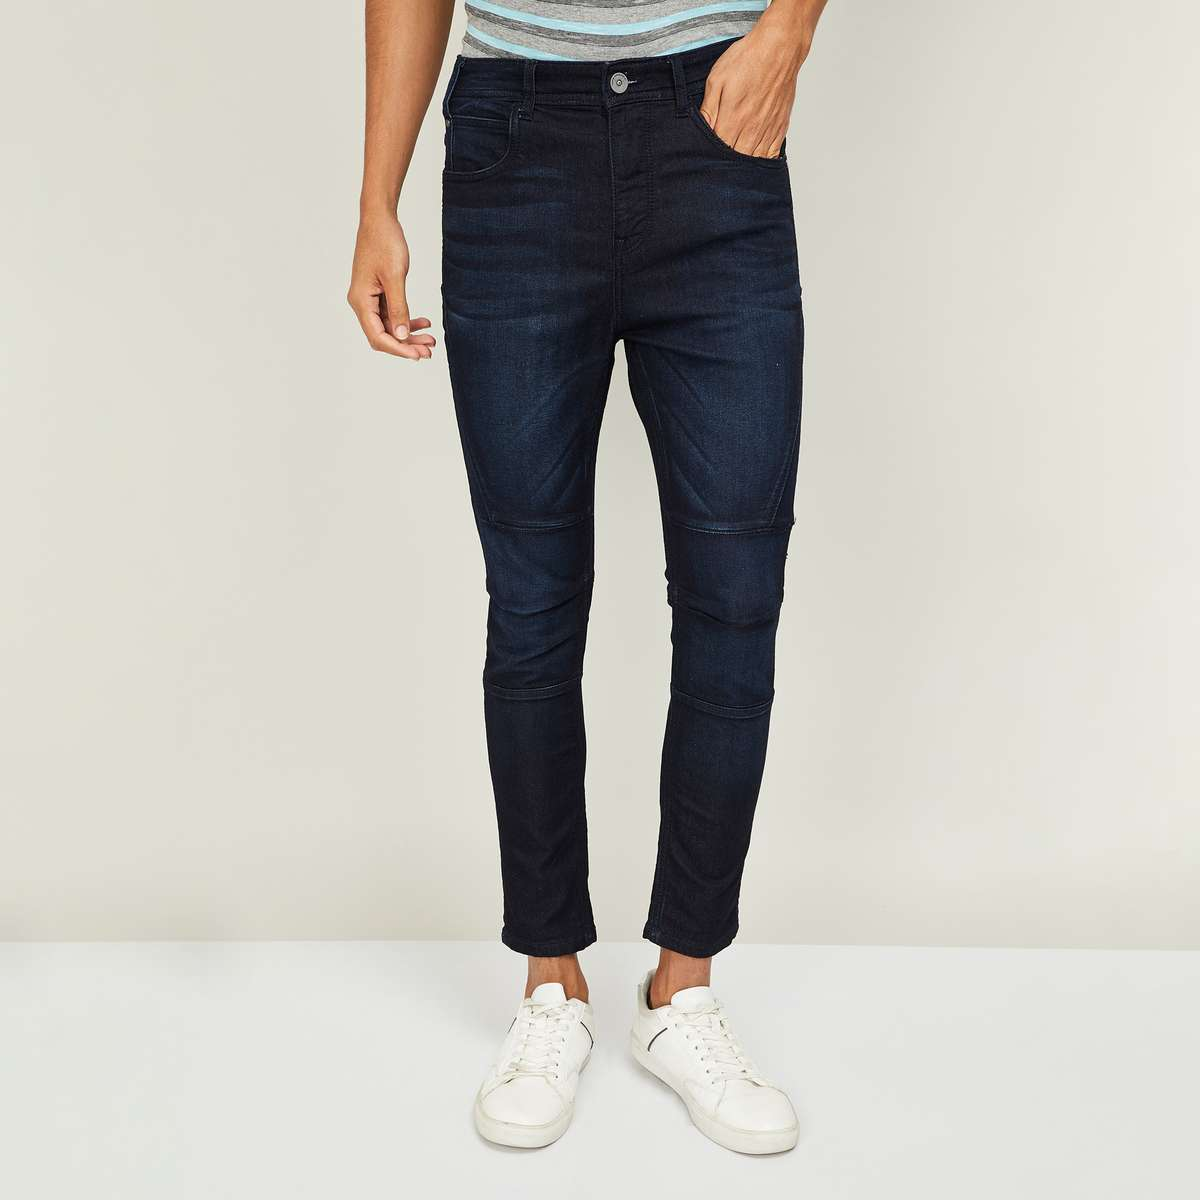 6.FORCA Men Stonewashed Skinny Fit Jeans